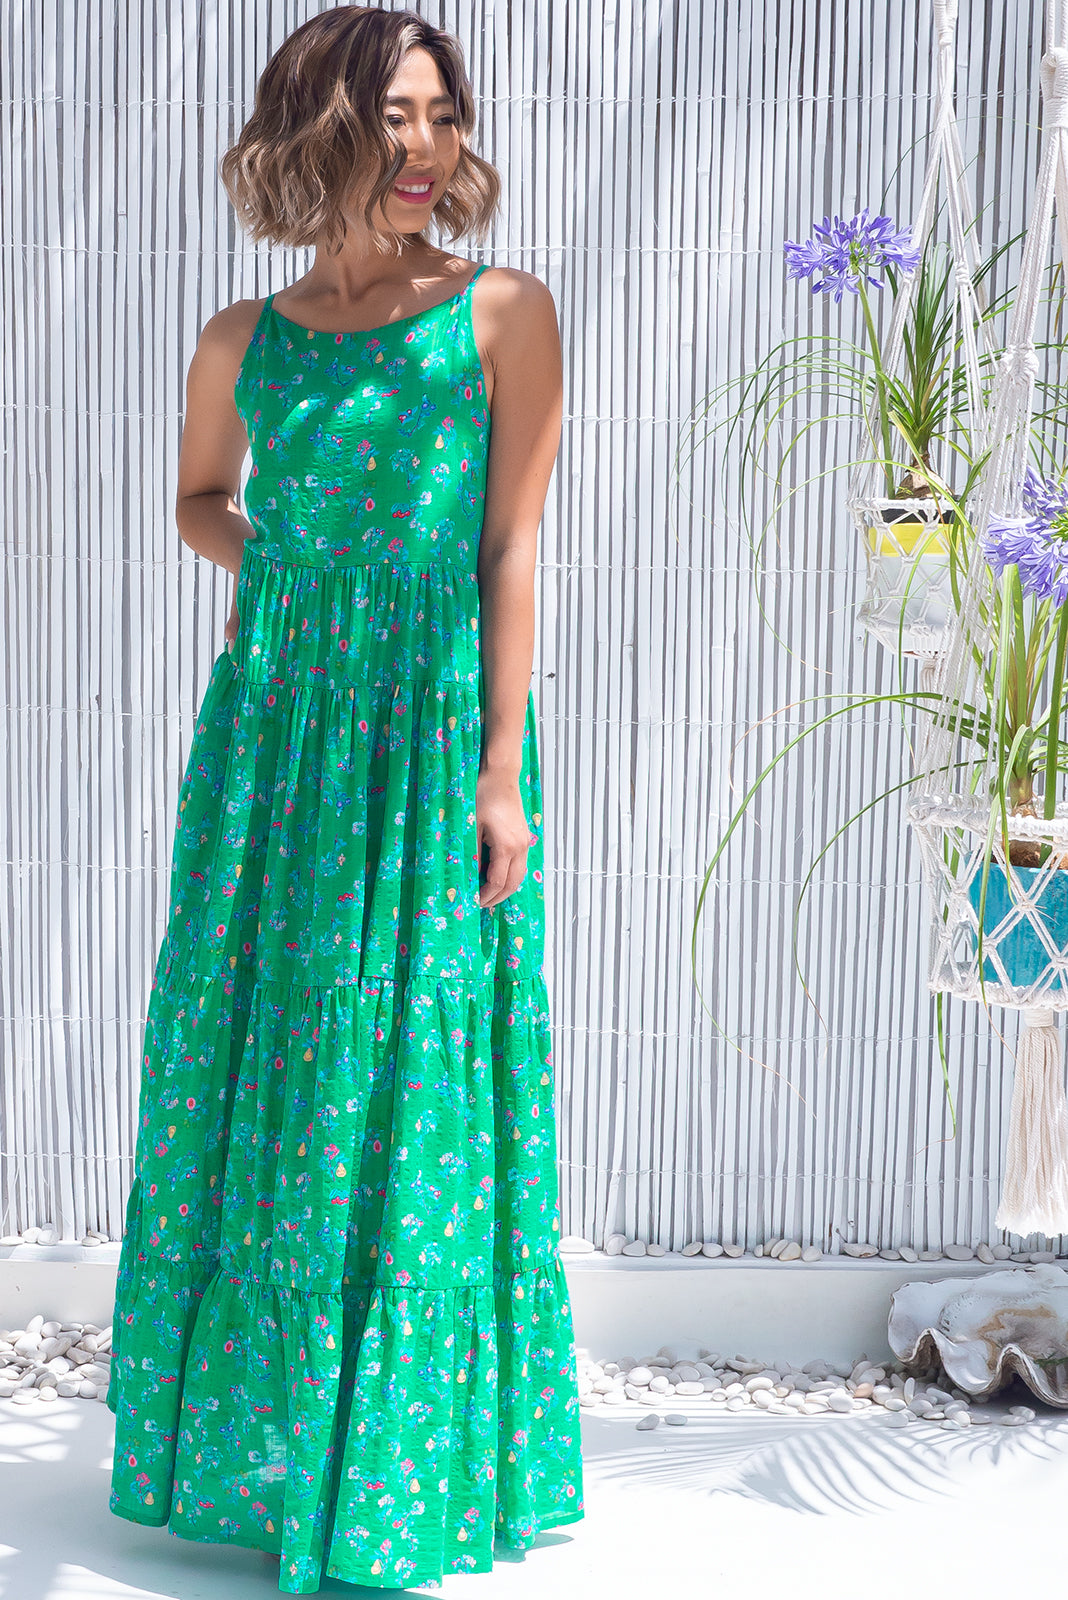 The Lulu Darling Green Fig Maxi Dress features high neck with thin straps, tiered skirt falling from under bust, deep side pockets and 100% cotton in vibrant green base with faint checker effect and blue/pink fruit print.